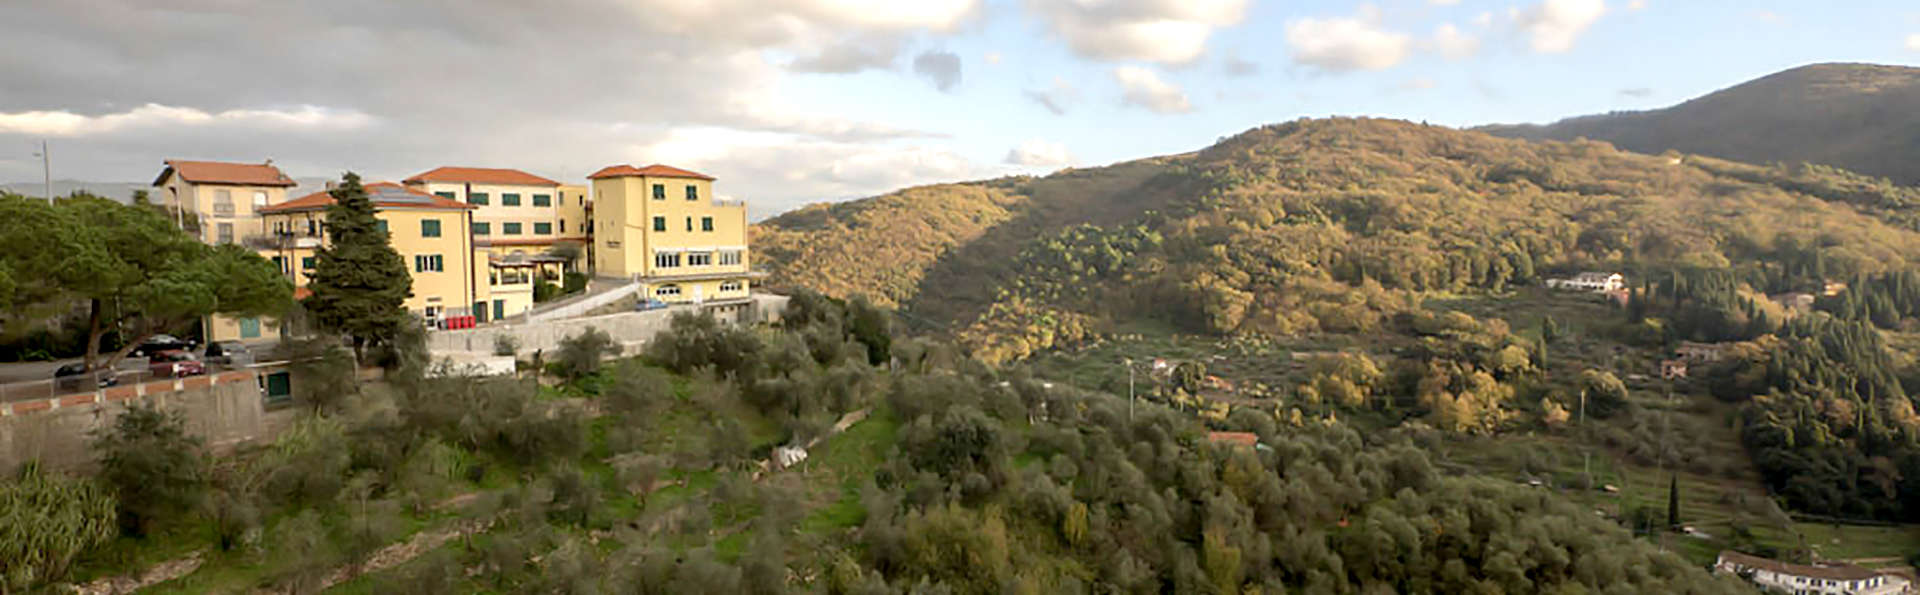 Albergo Serena - Edit_View.jpg